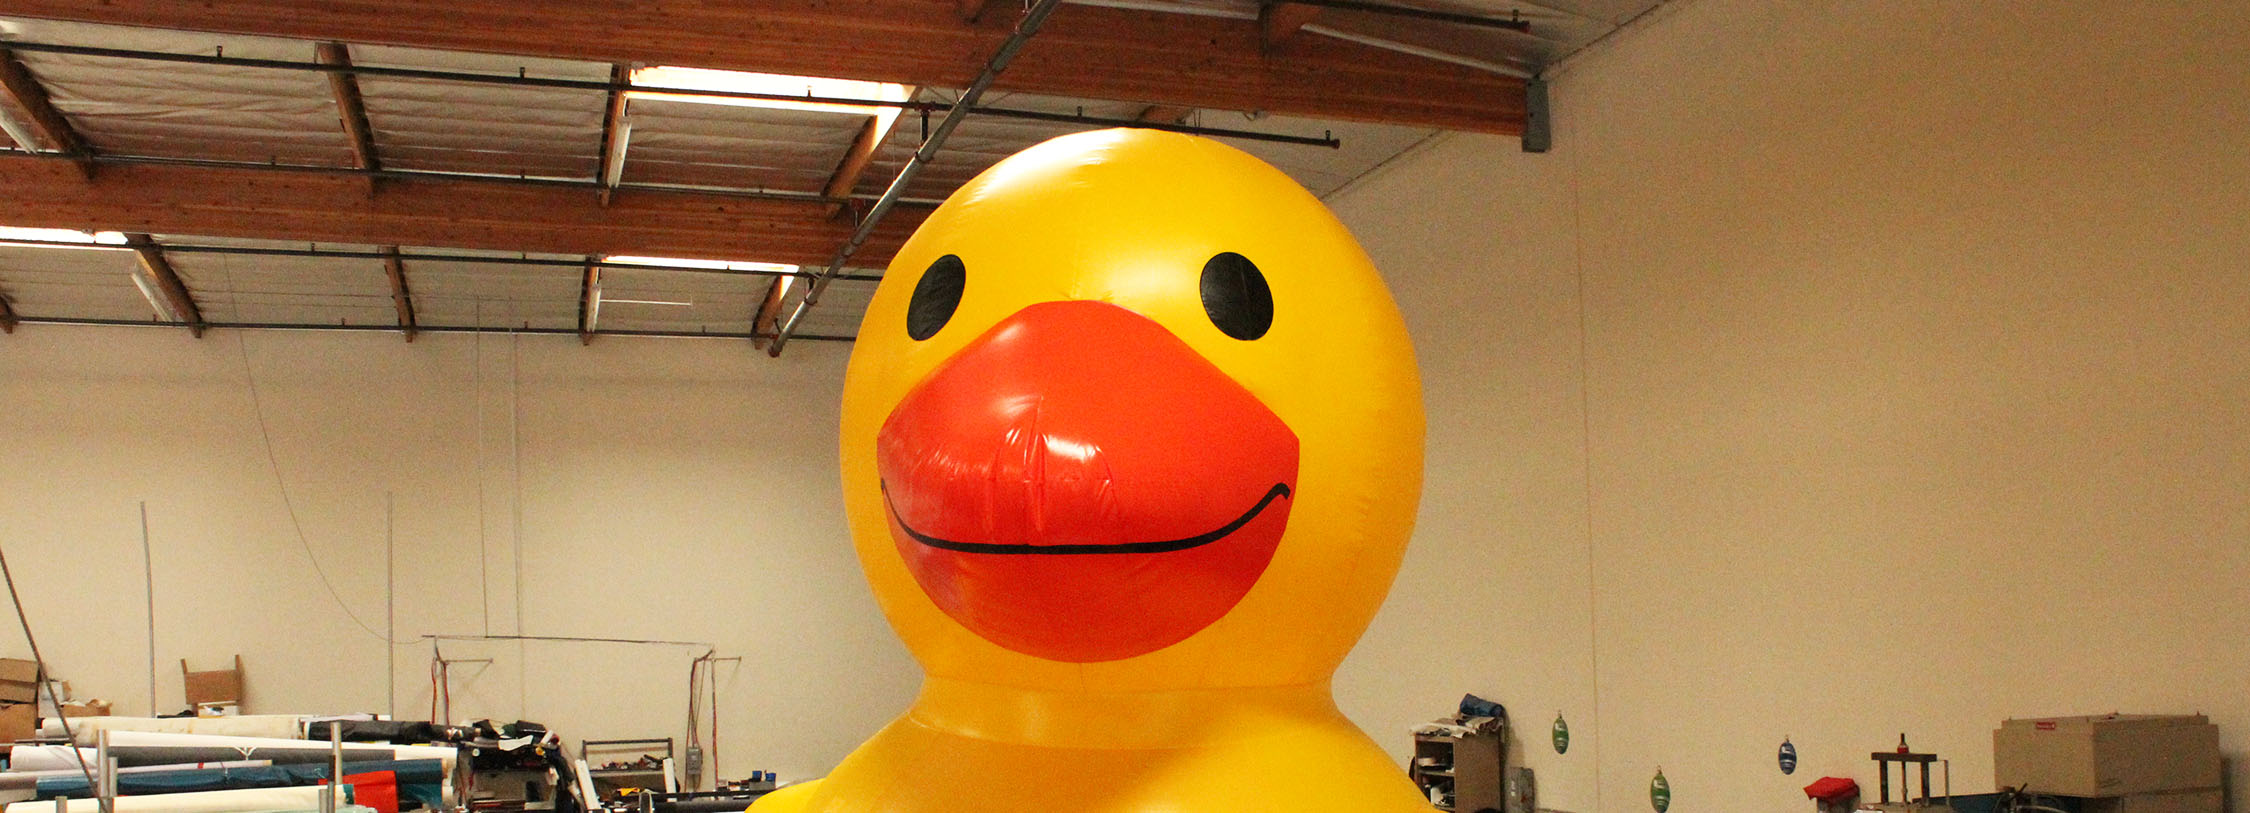 inflatable-duck-head-header.jpg